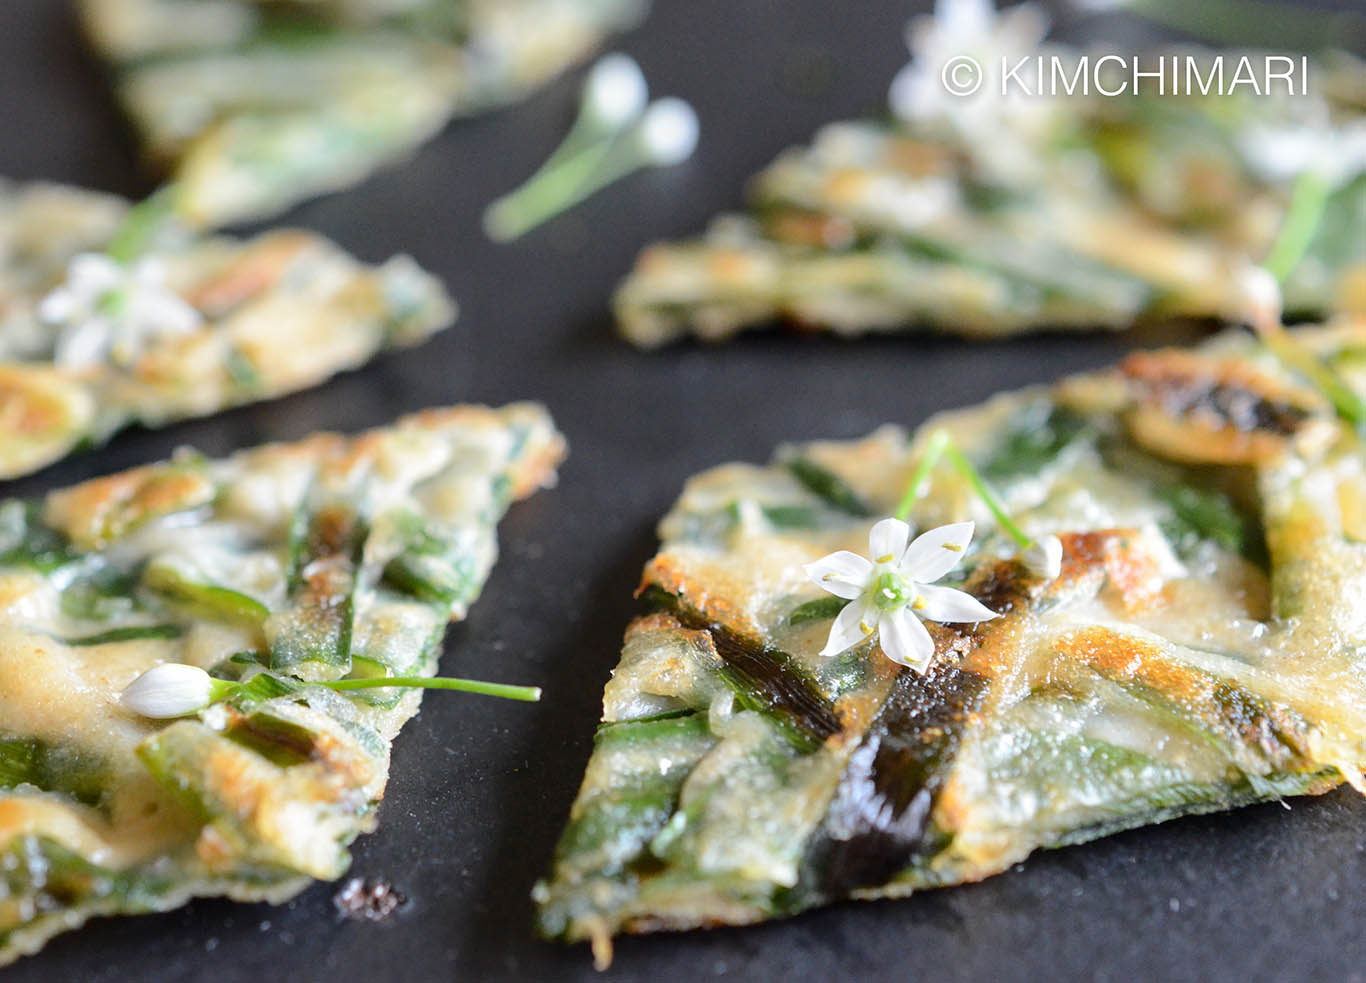 Korean Chive Pancake (Buchujeon) with Chive Flowers